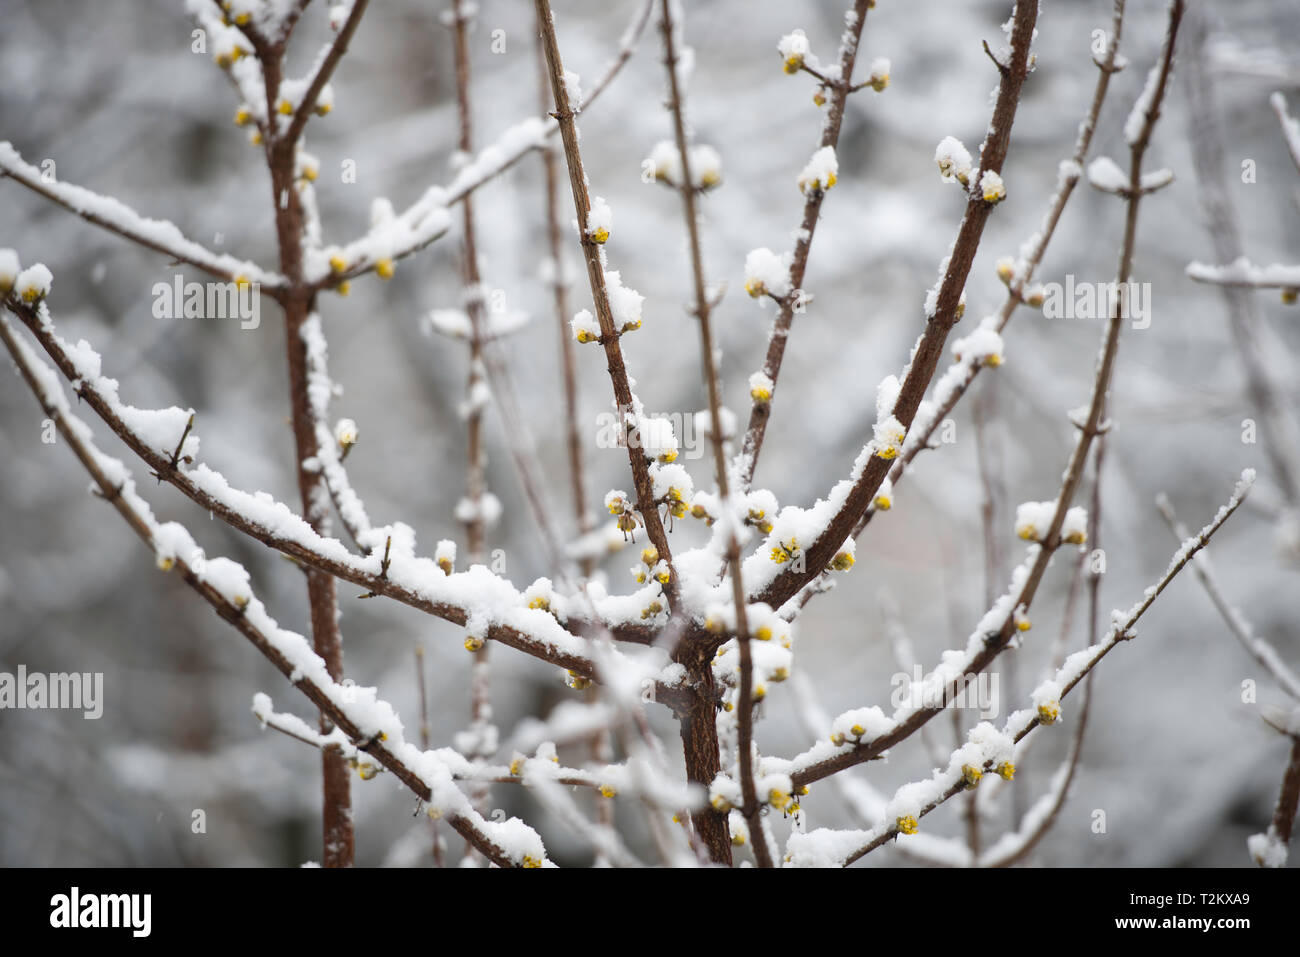 heavy sticky snow falling on tree branches with buds in early spring, close - Stock Image